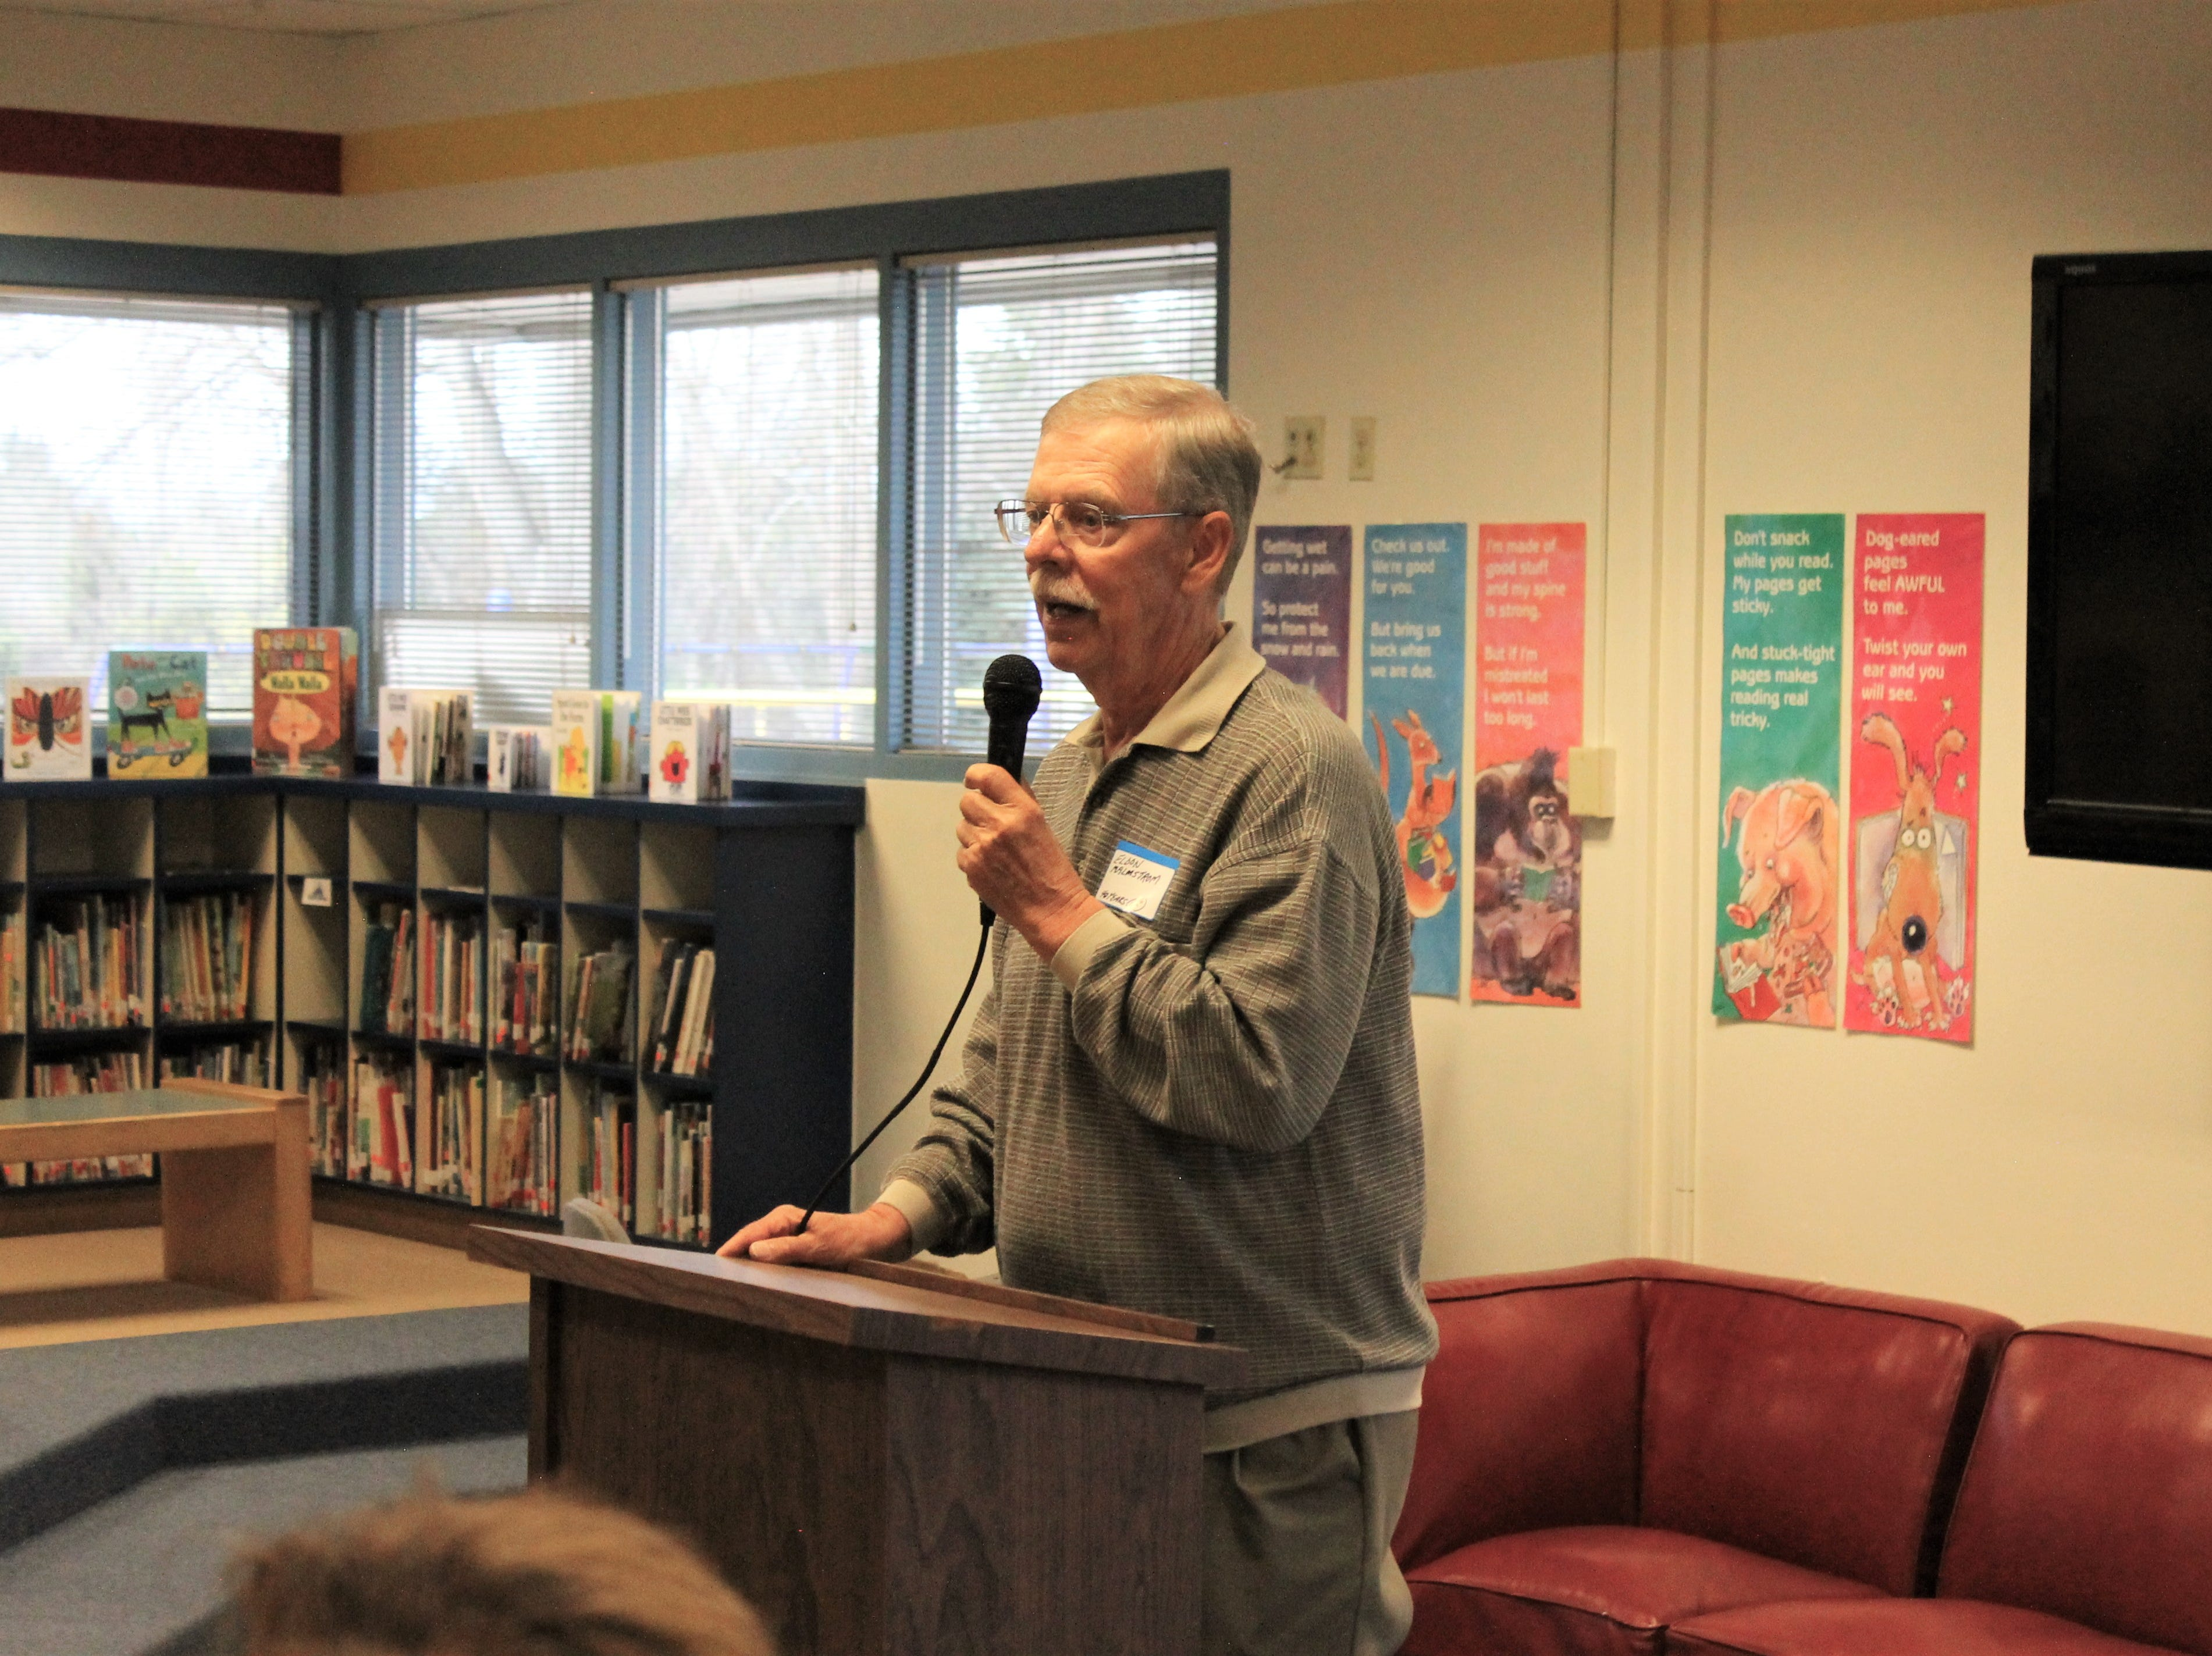 Eldon Malmstrom, one of the original teachers at Riffenburgh Elementary School, spoke at the school's 50th anniversary celebration Friday, April 26, 2019. Malmstrom was known for his creativity in the classroom.